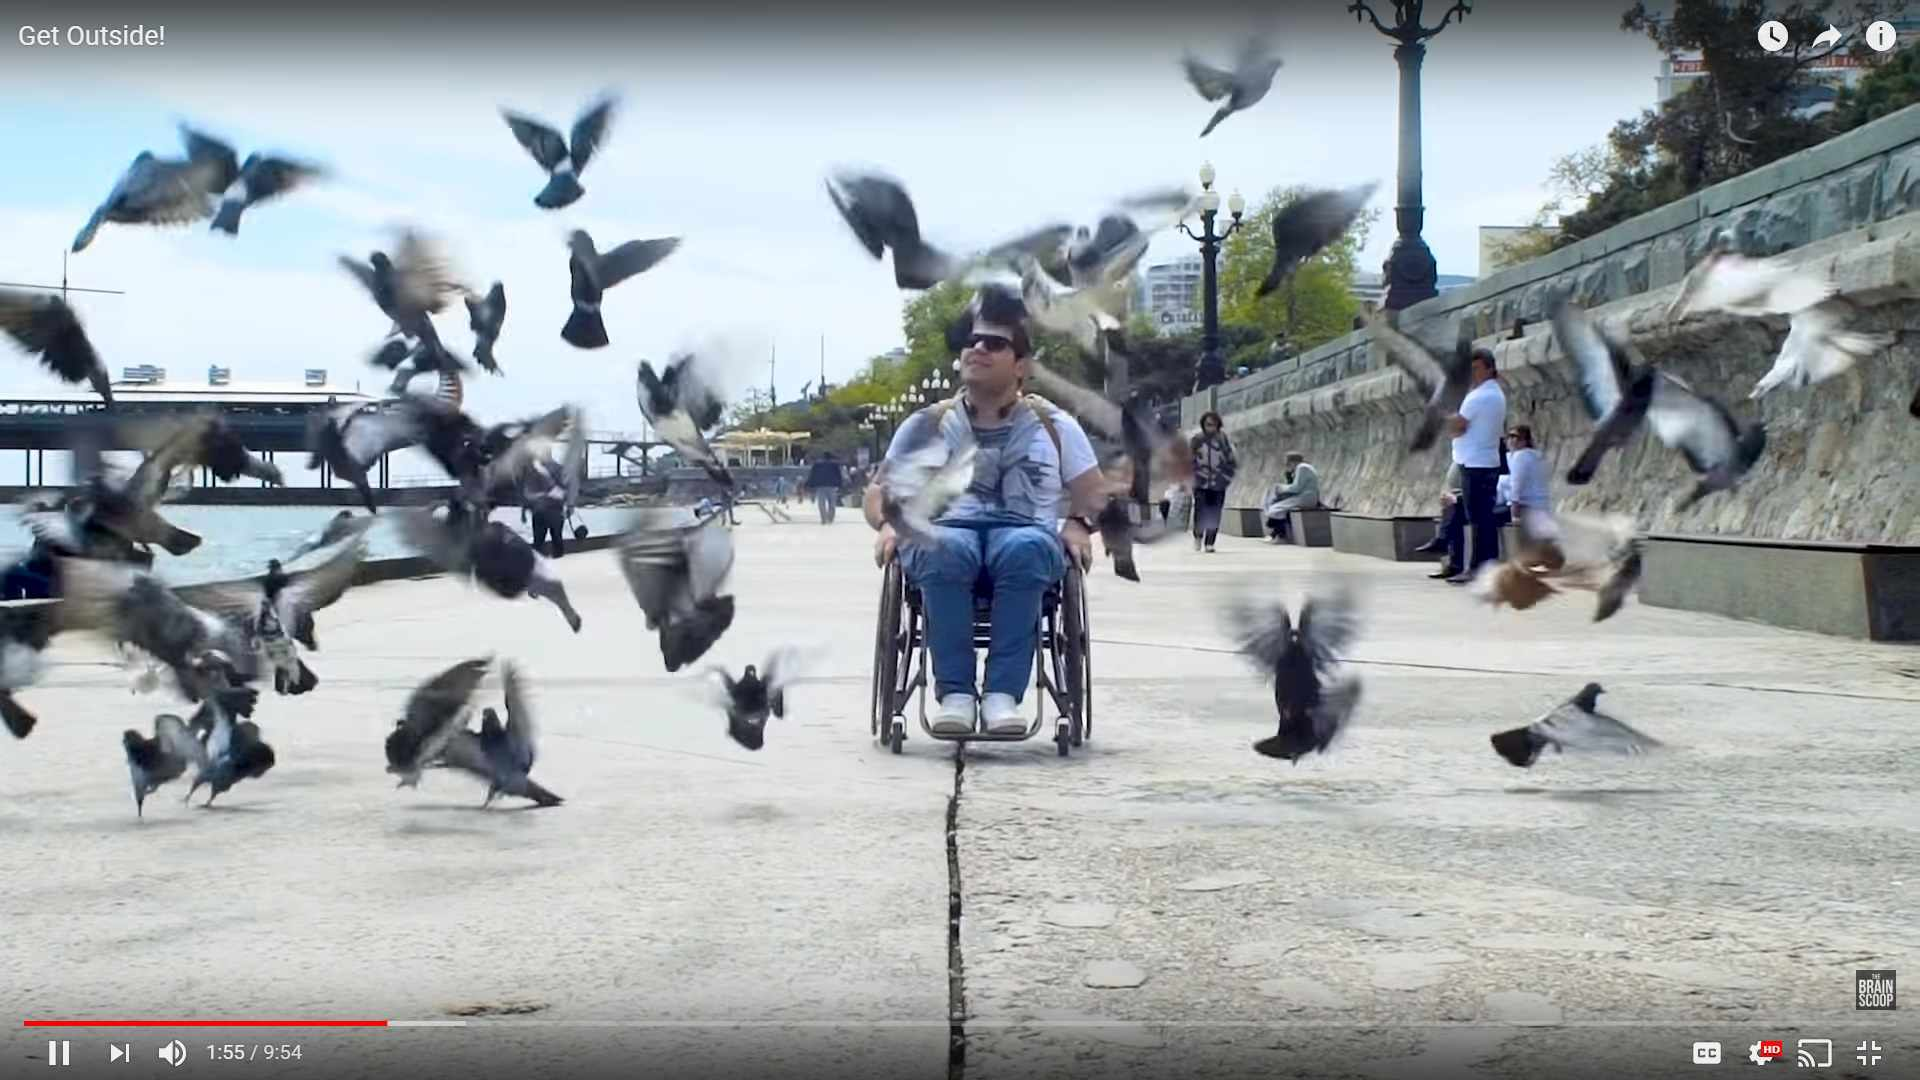 Chair-using man moving through seagulls in The Brain Scoop's